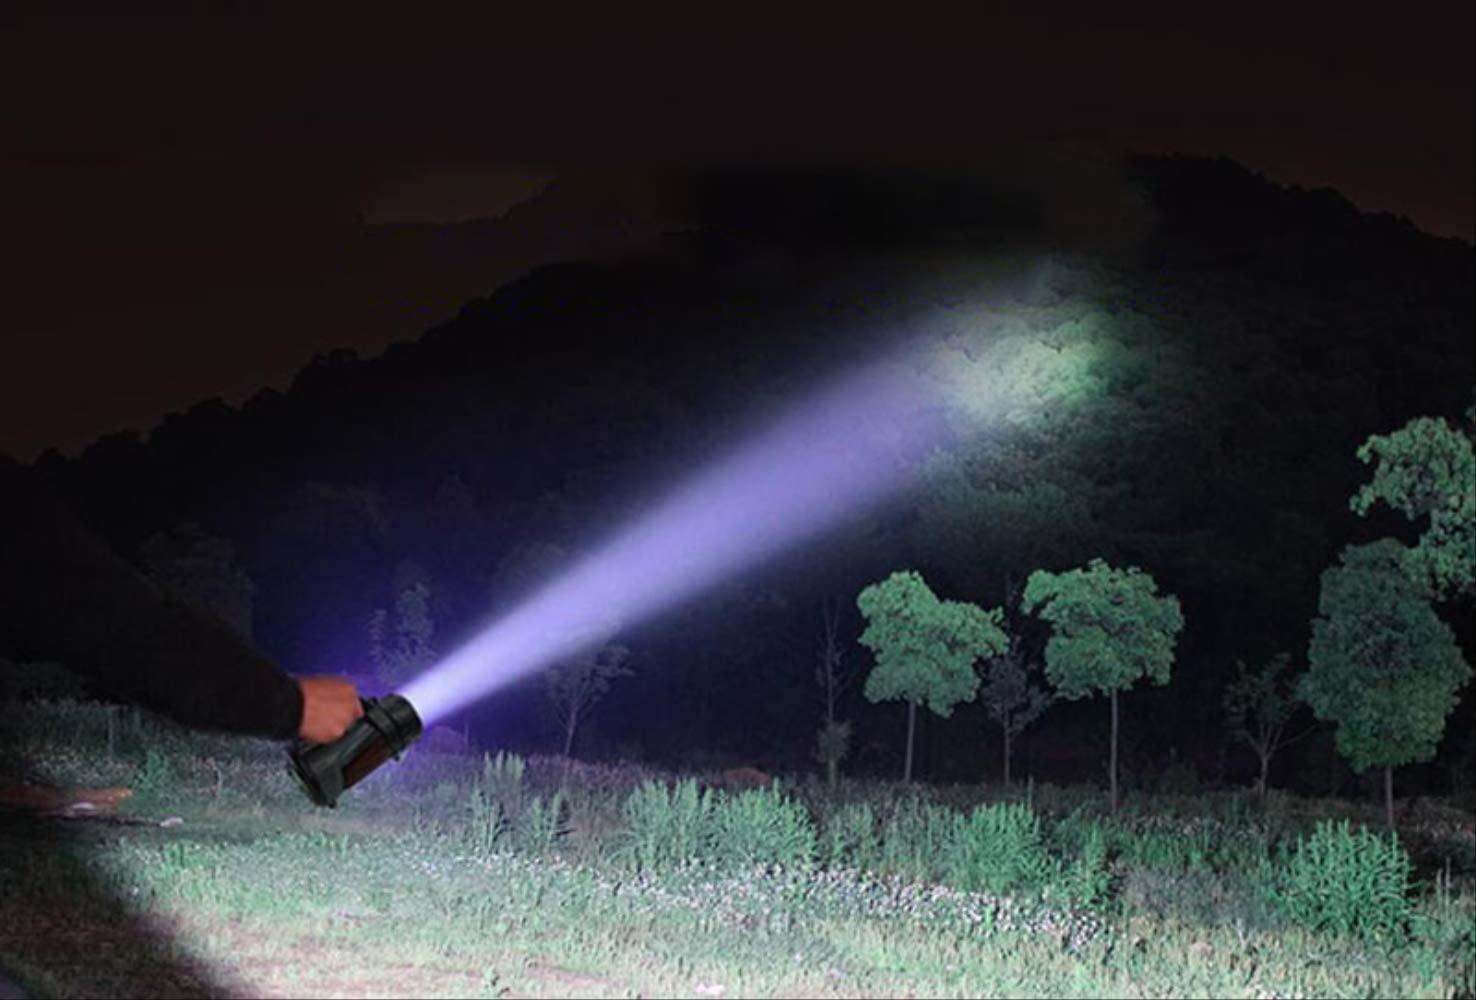 BAJIE Flashlight Super Bright Powerful Usb Led Flashlight Searching Torches 2 Side Night Light Lamp Hand Camping Lantern Rechargeable Battery C-type